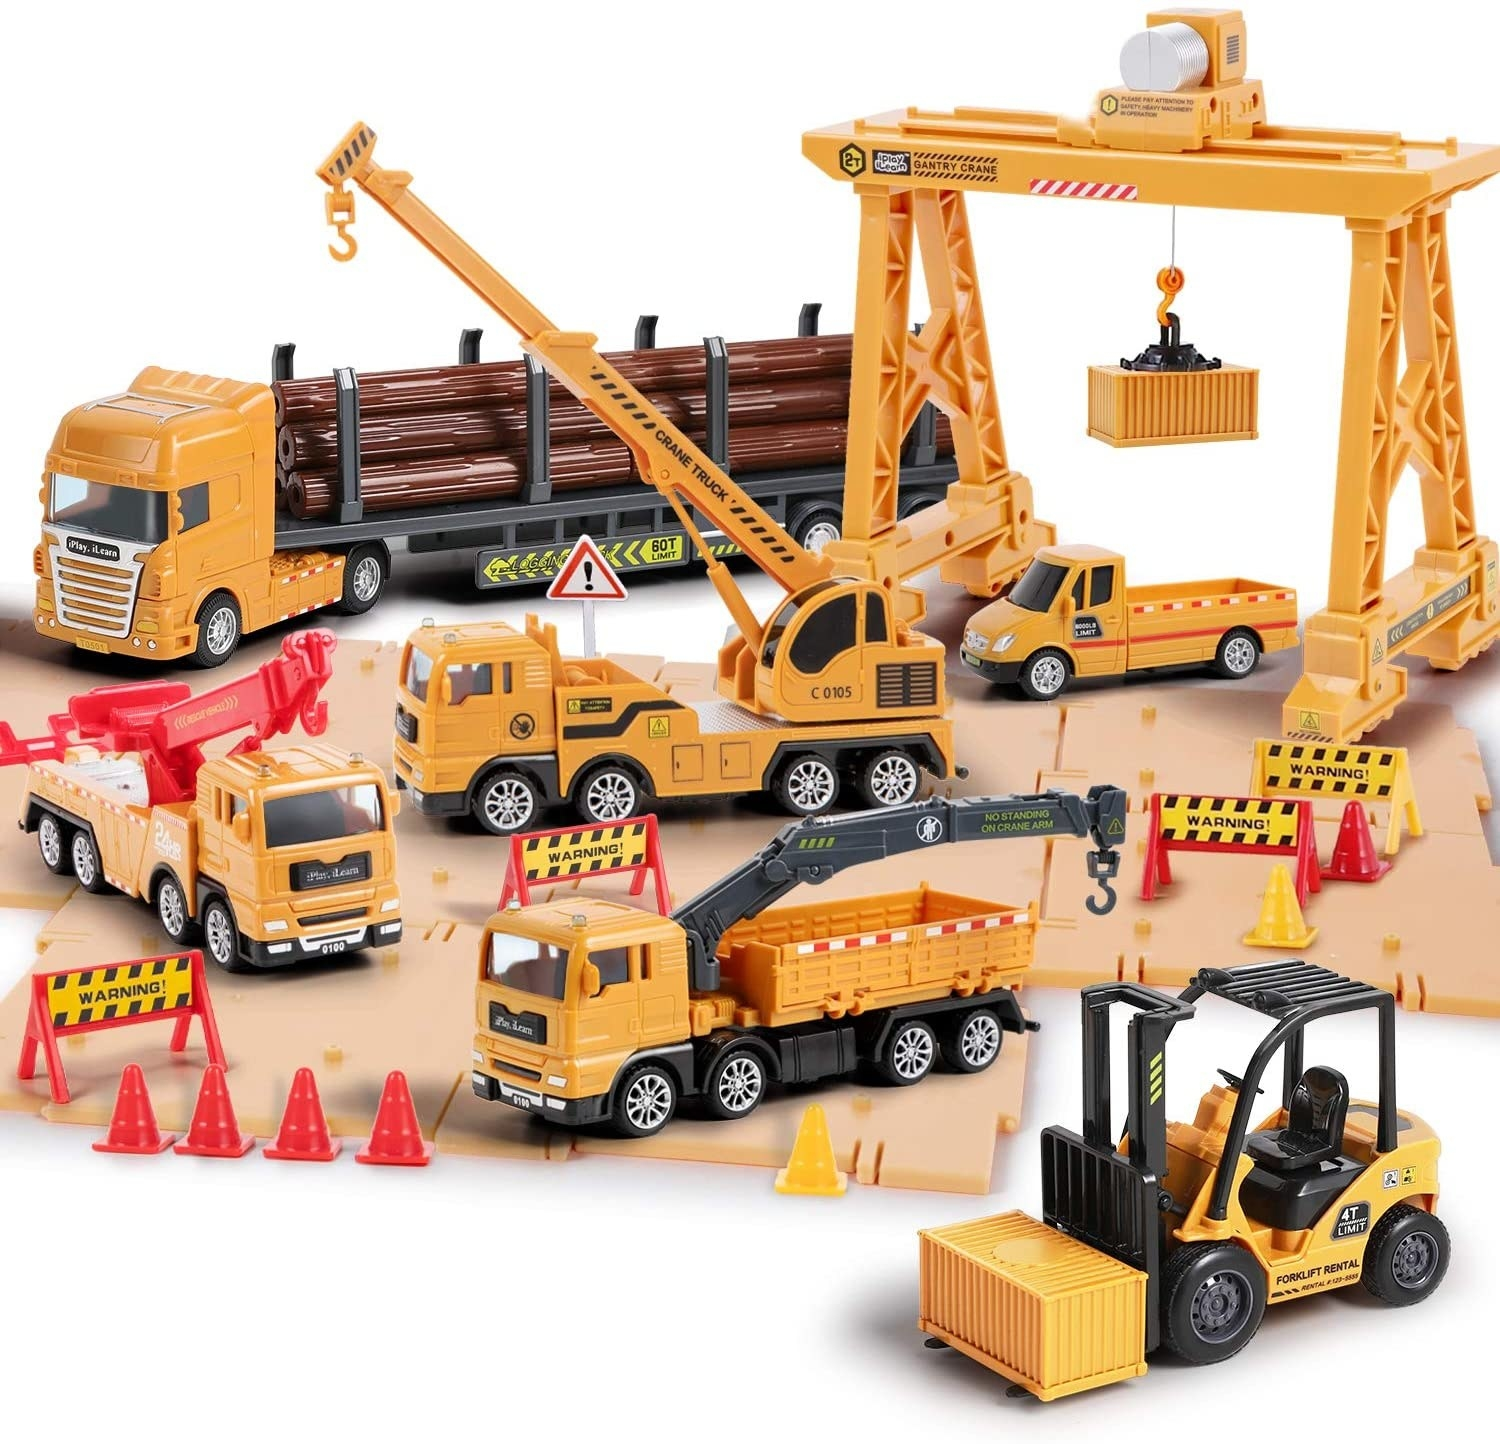 Multiple plastic yellow construction vehicle toys and accessories